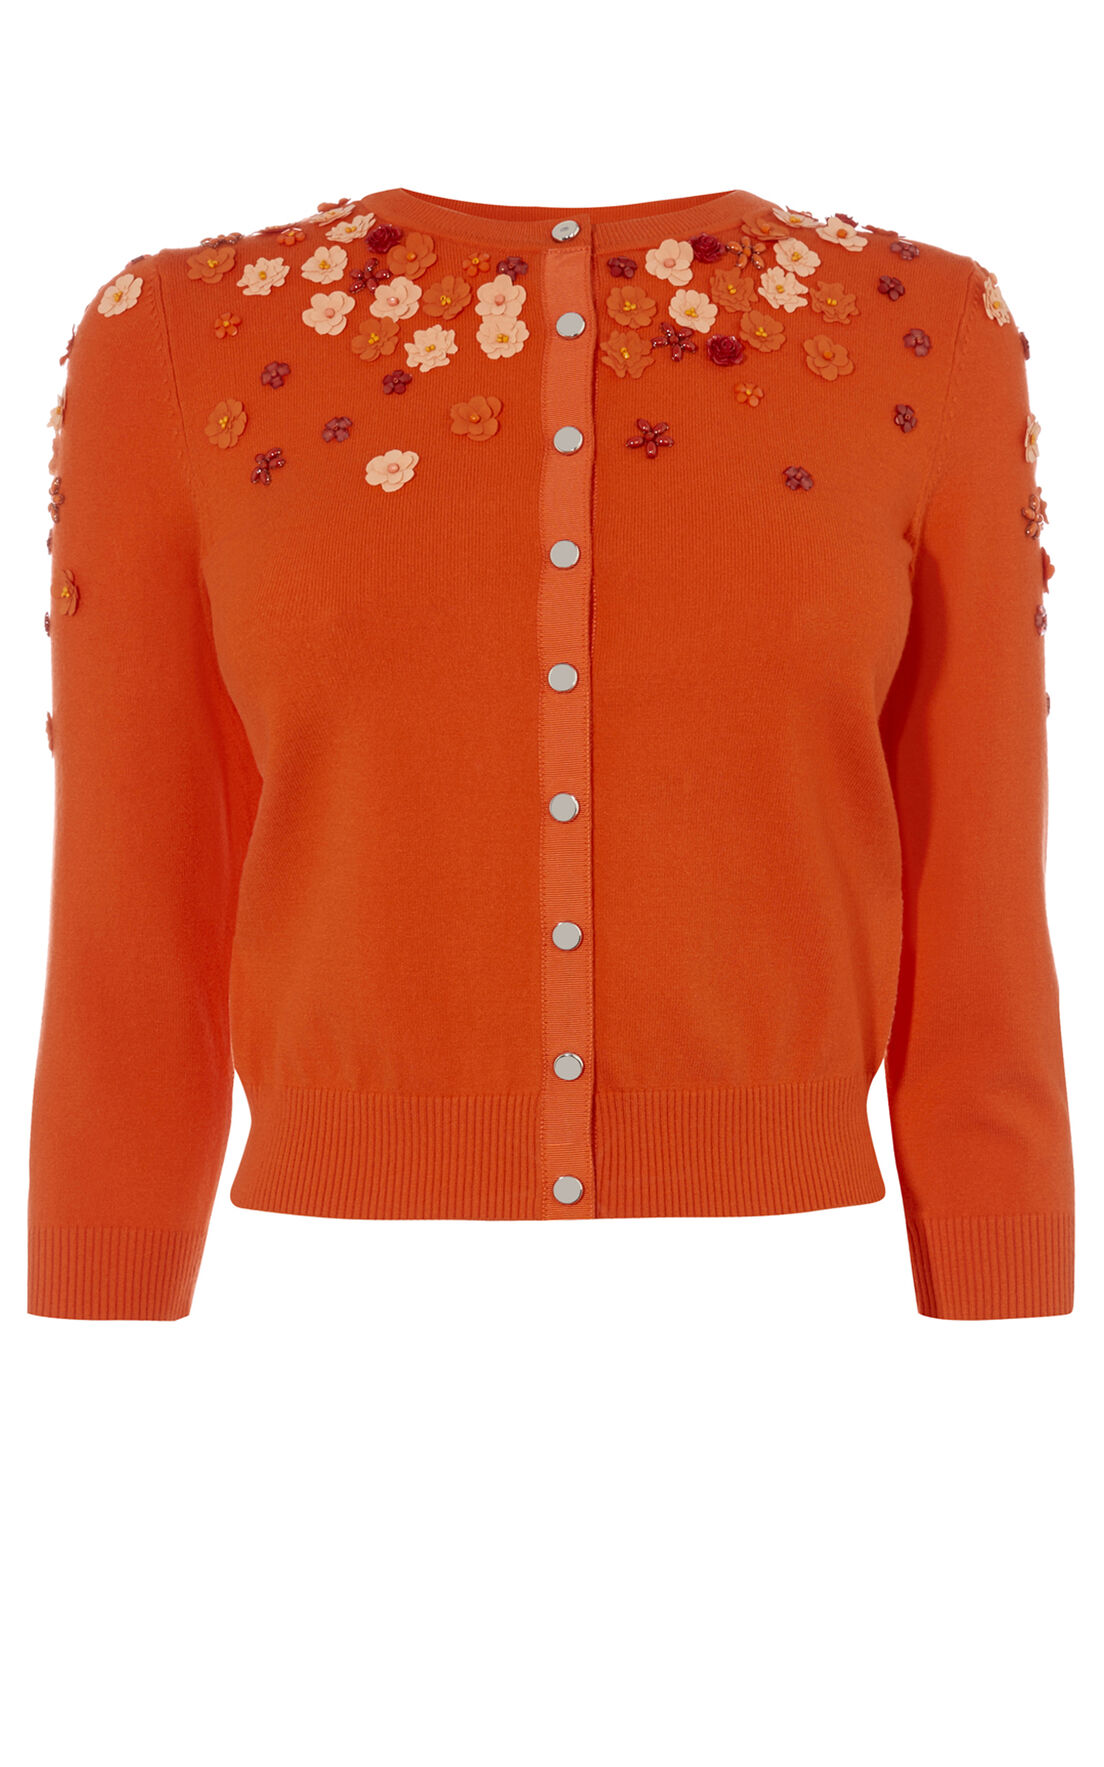 Karen Millen, FLORAL BEADED CARDIGAN Orange 0